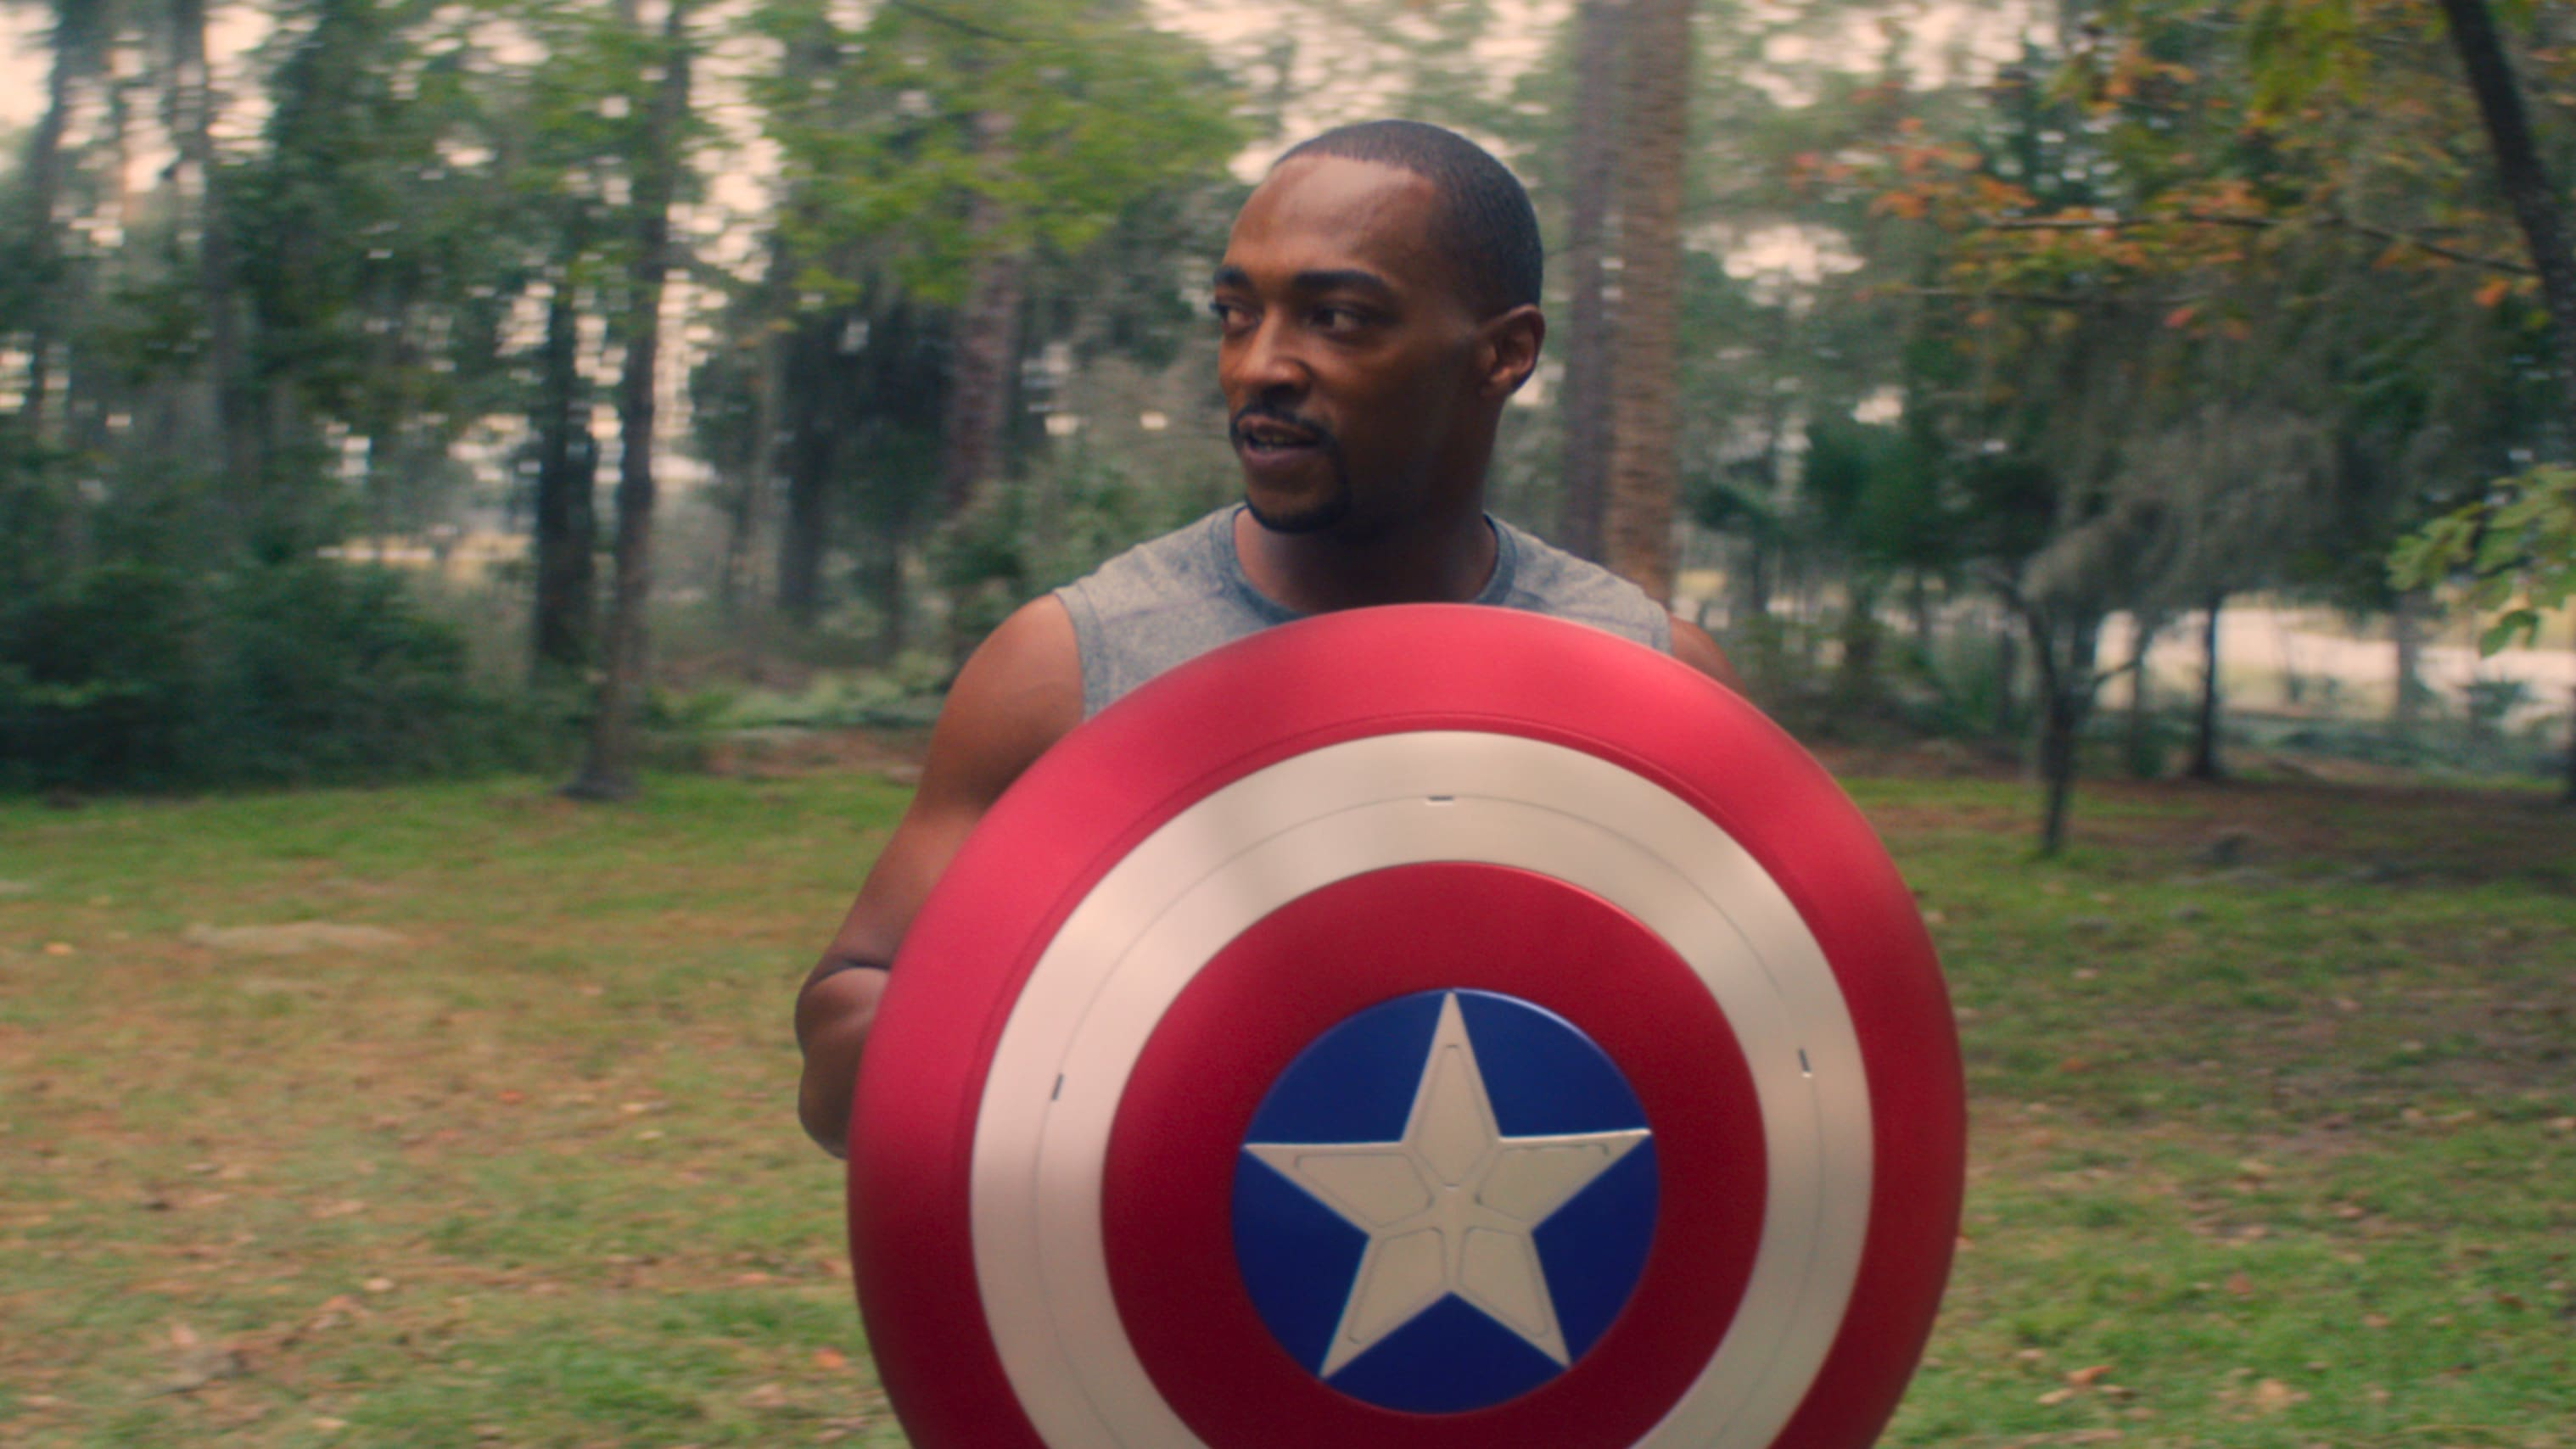 Falcon/Sam Wilson (Anthony Mackie) in Marvel Studios' THE FALCON AND THE WINTER SOLDIER exclusively on Disney+. Photo courtesy of Marvel Studios. ©Marvel Studios 2021. All Rights Reserved.